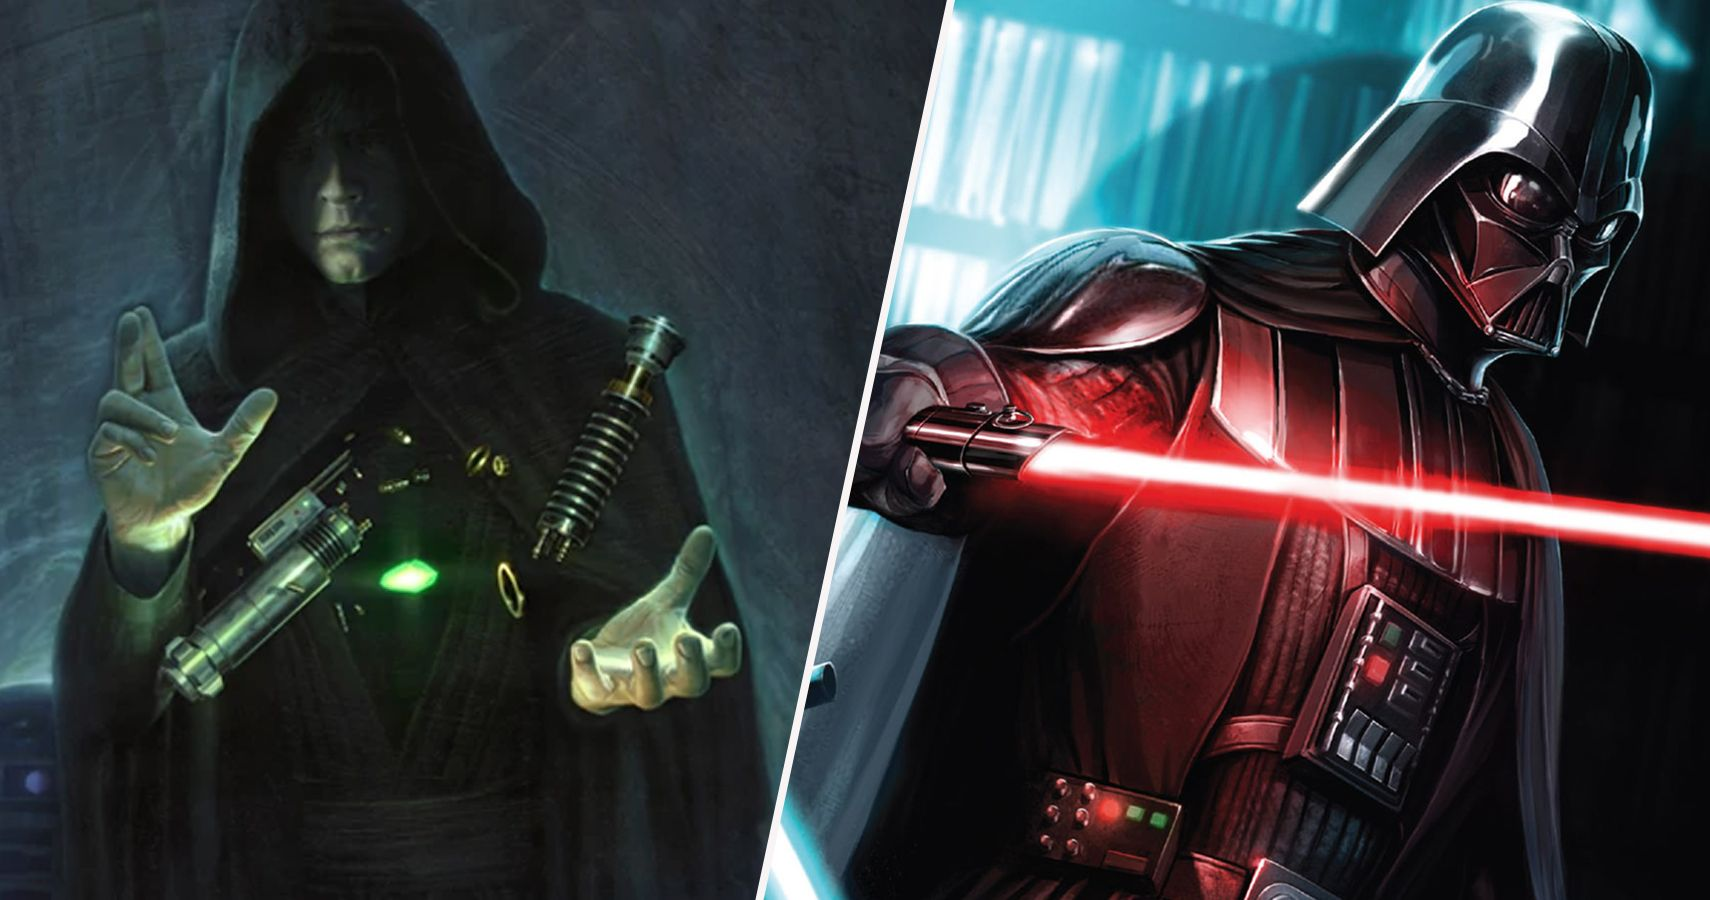 Star Wars: 20 Things Only True Fans Know About Lightsabers